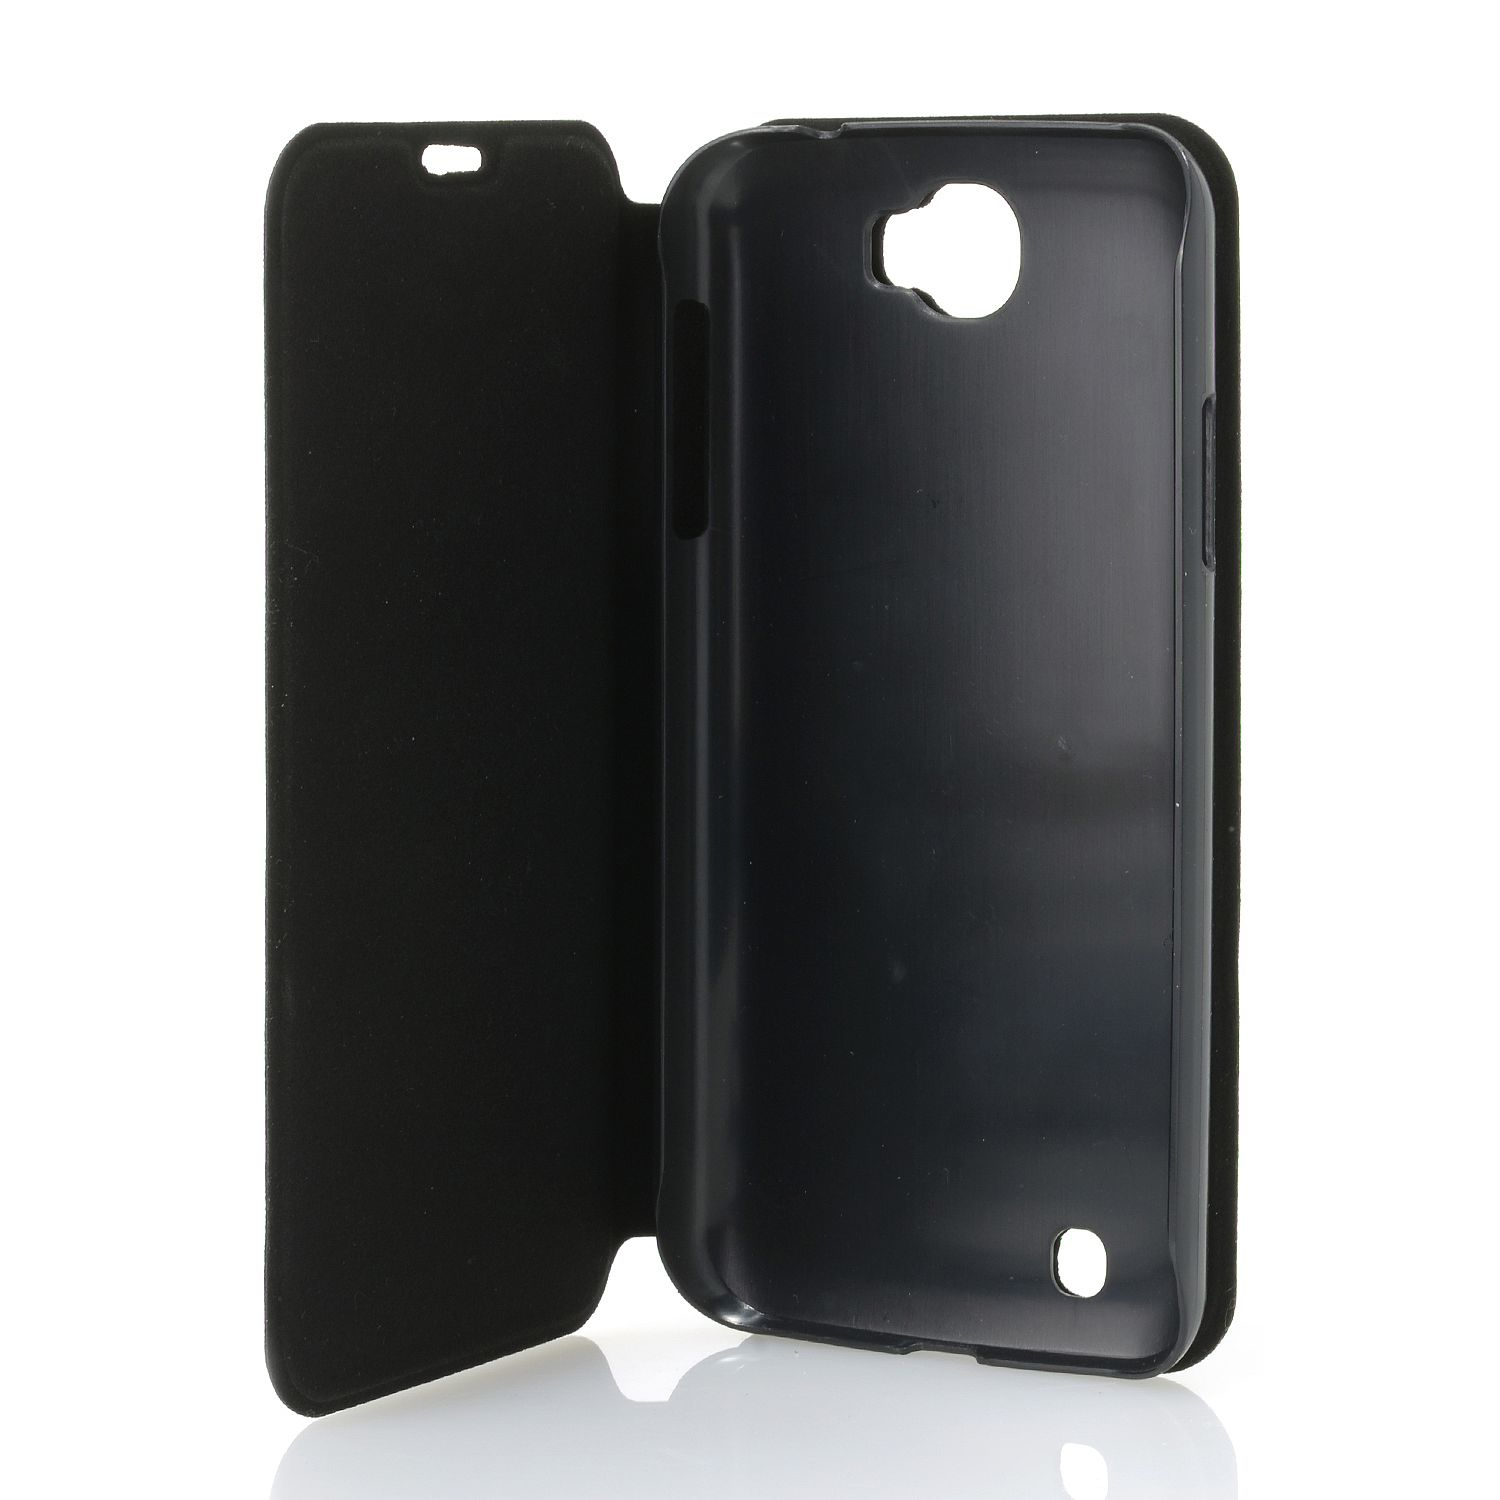 DIGITAL2 Flip Cover Folio Case For D2 D502P 5 Smartphone Black Fitted